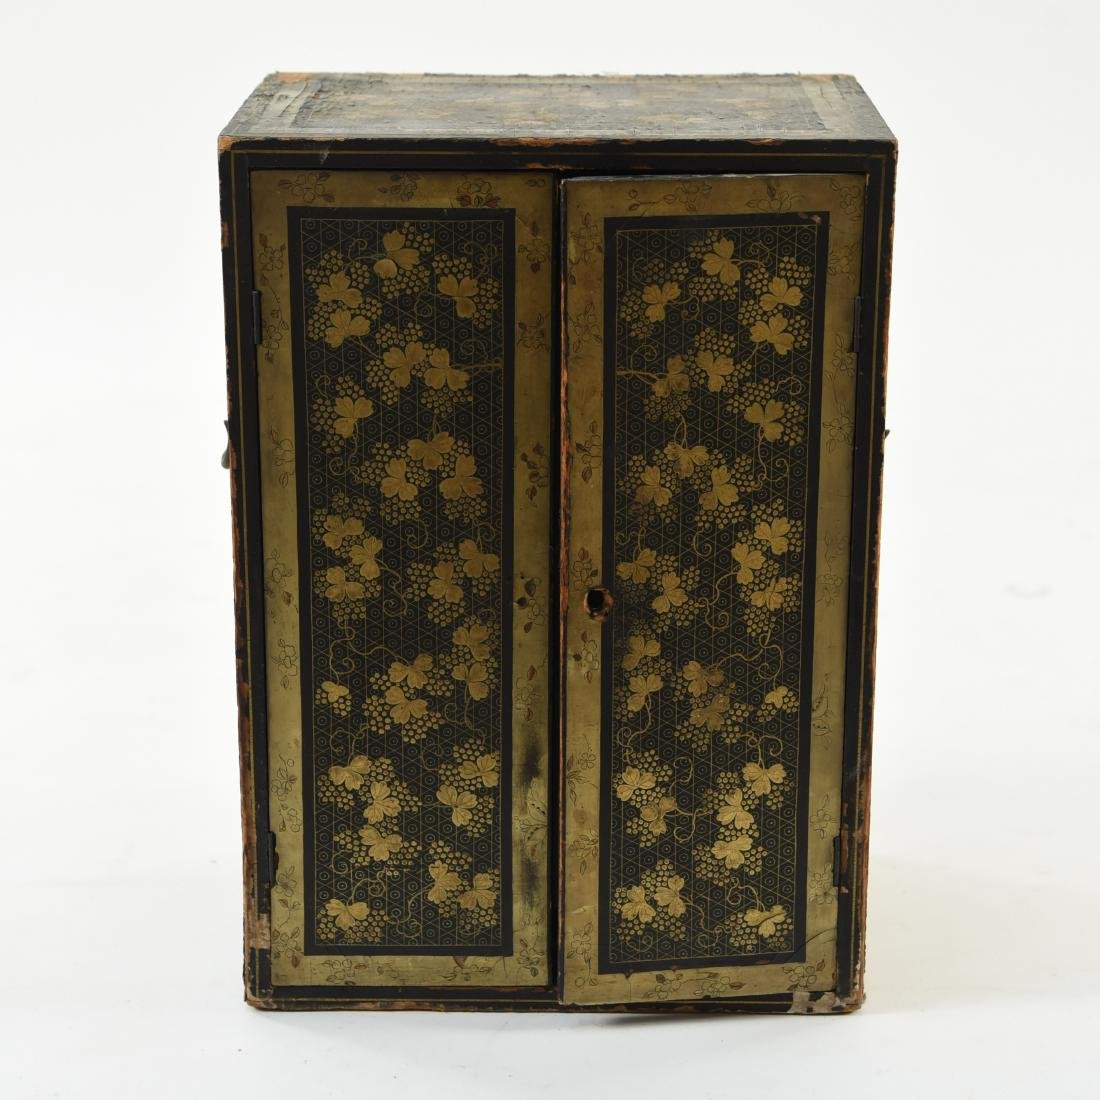 19TH C. JAPANESE LACQUERED BOX